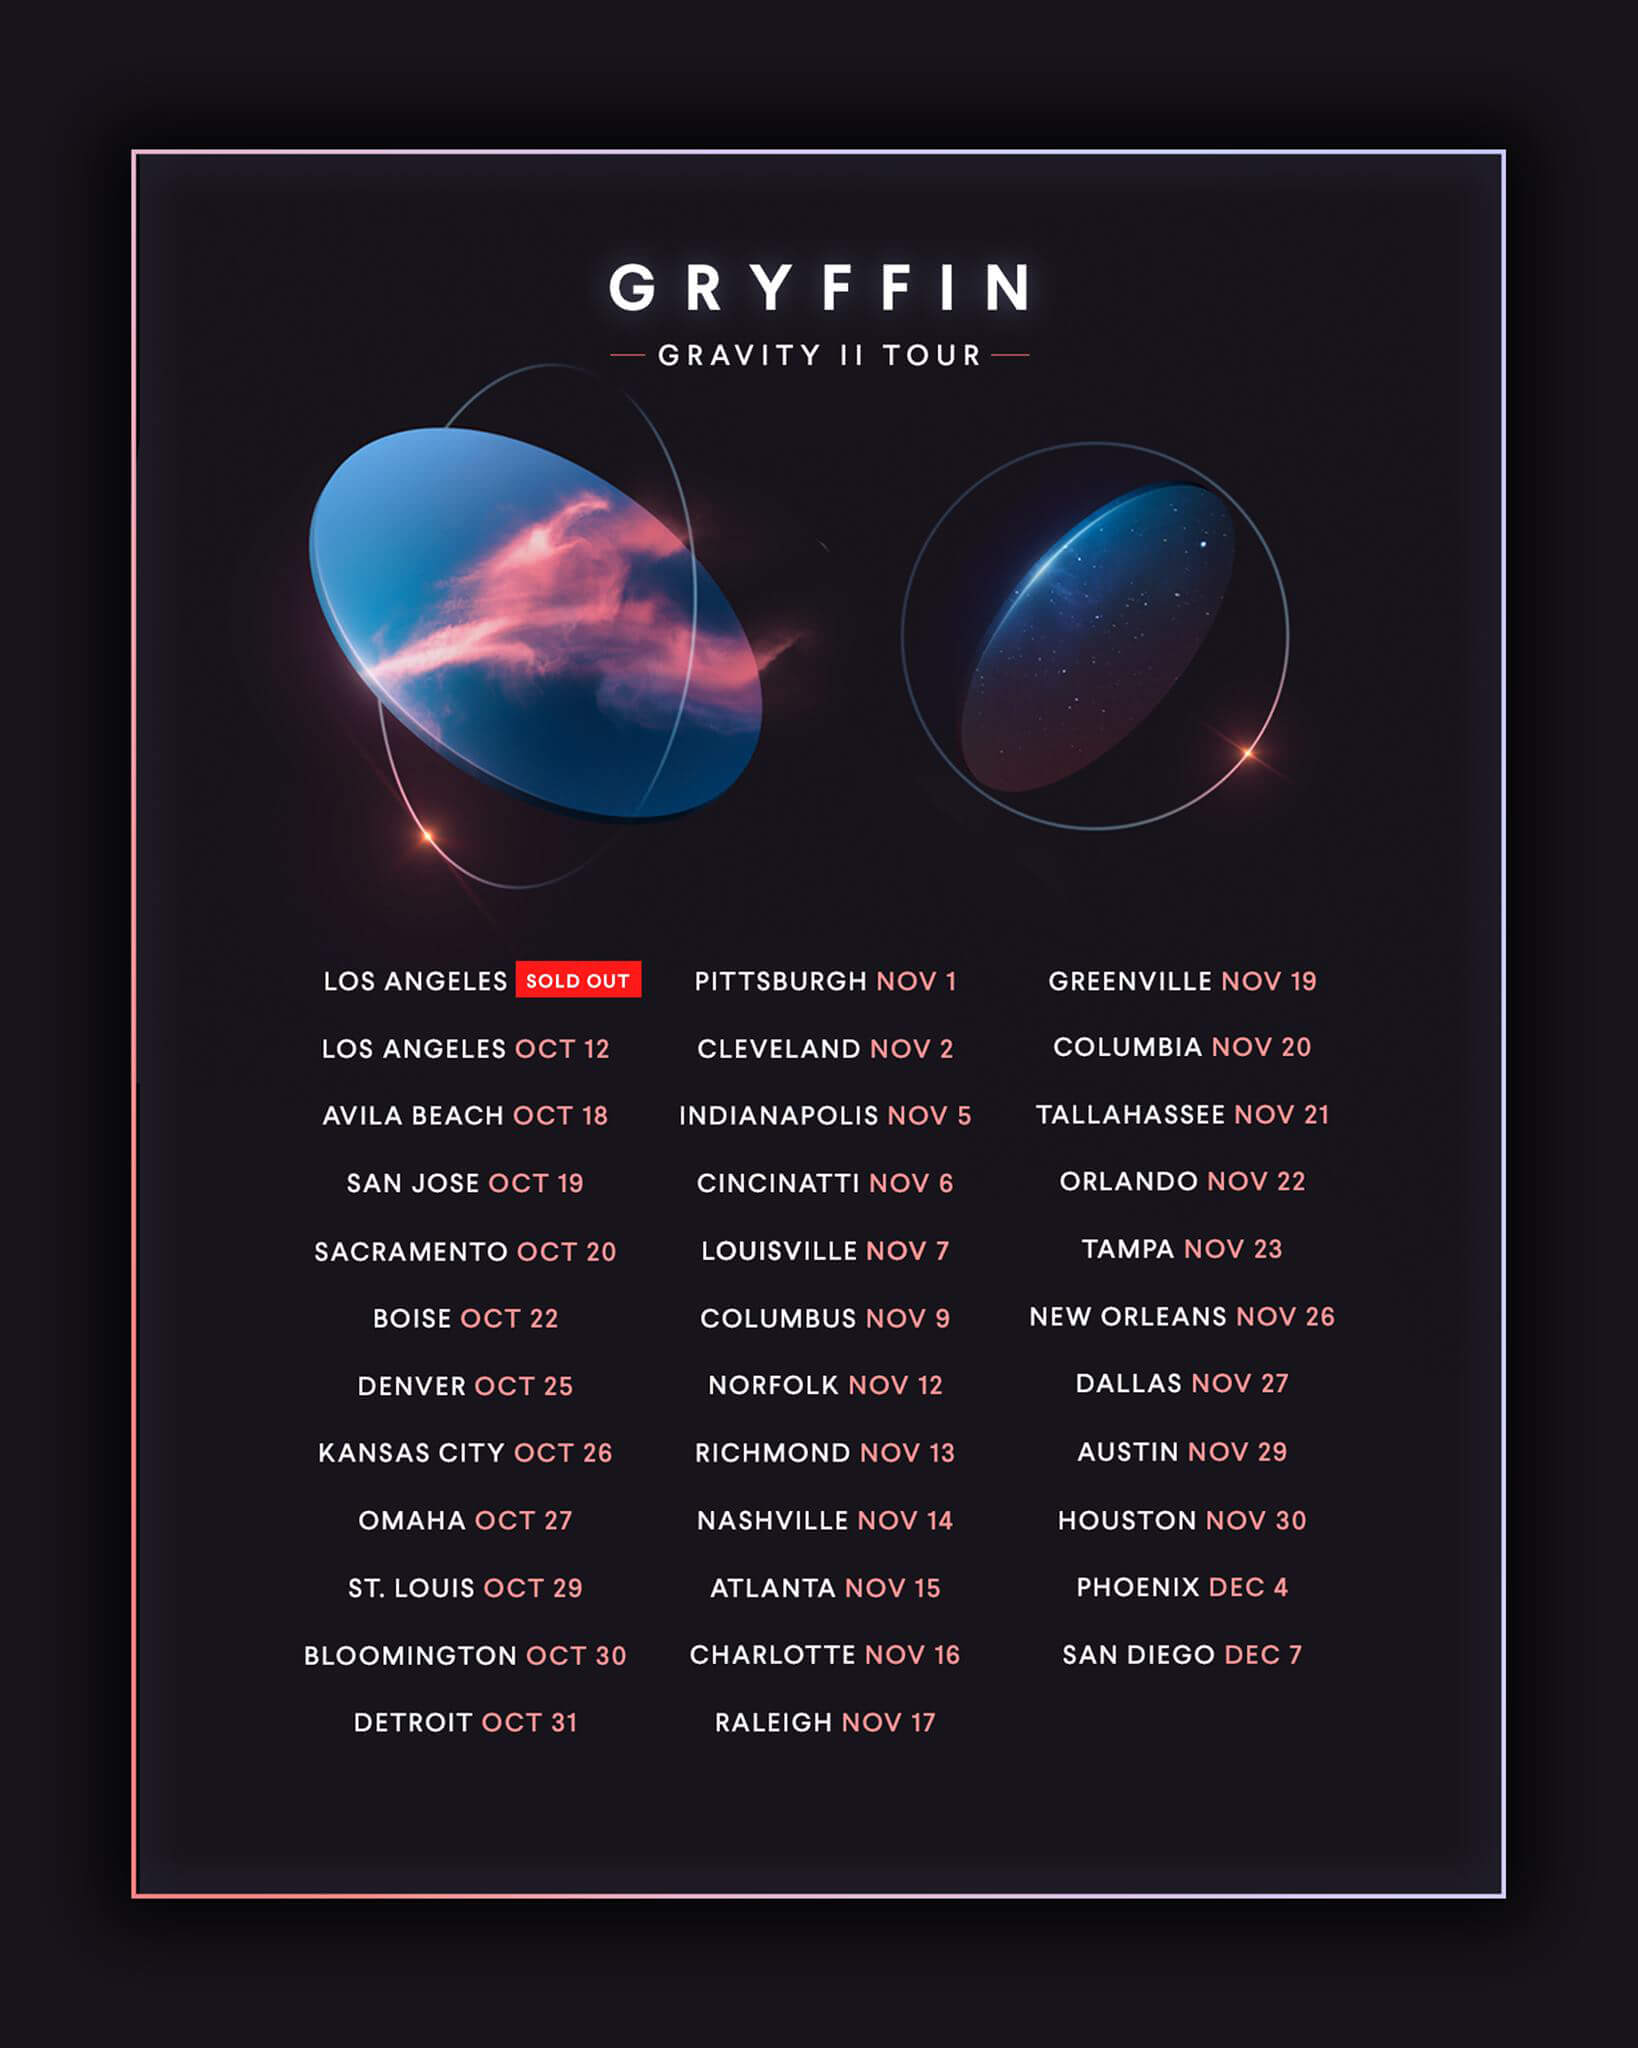 Gryffin in Raleigh